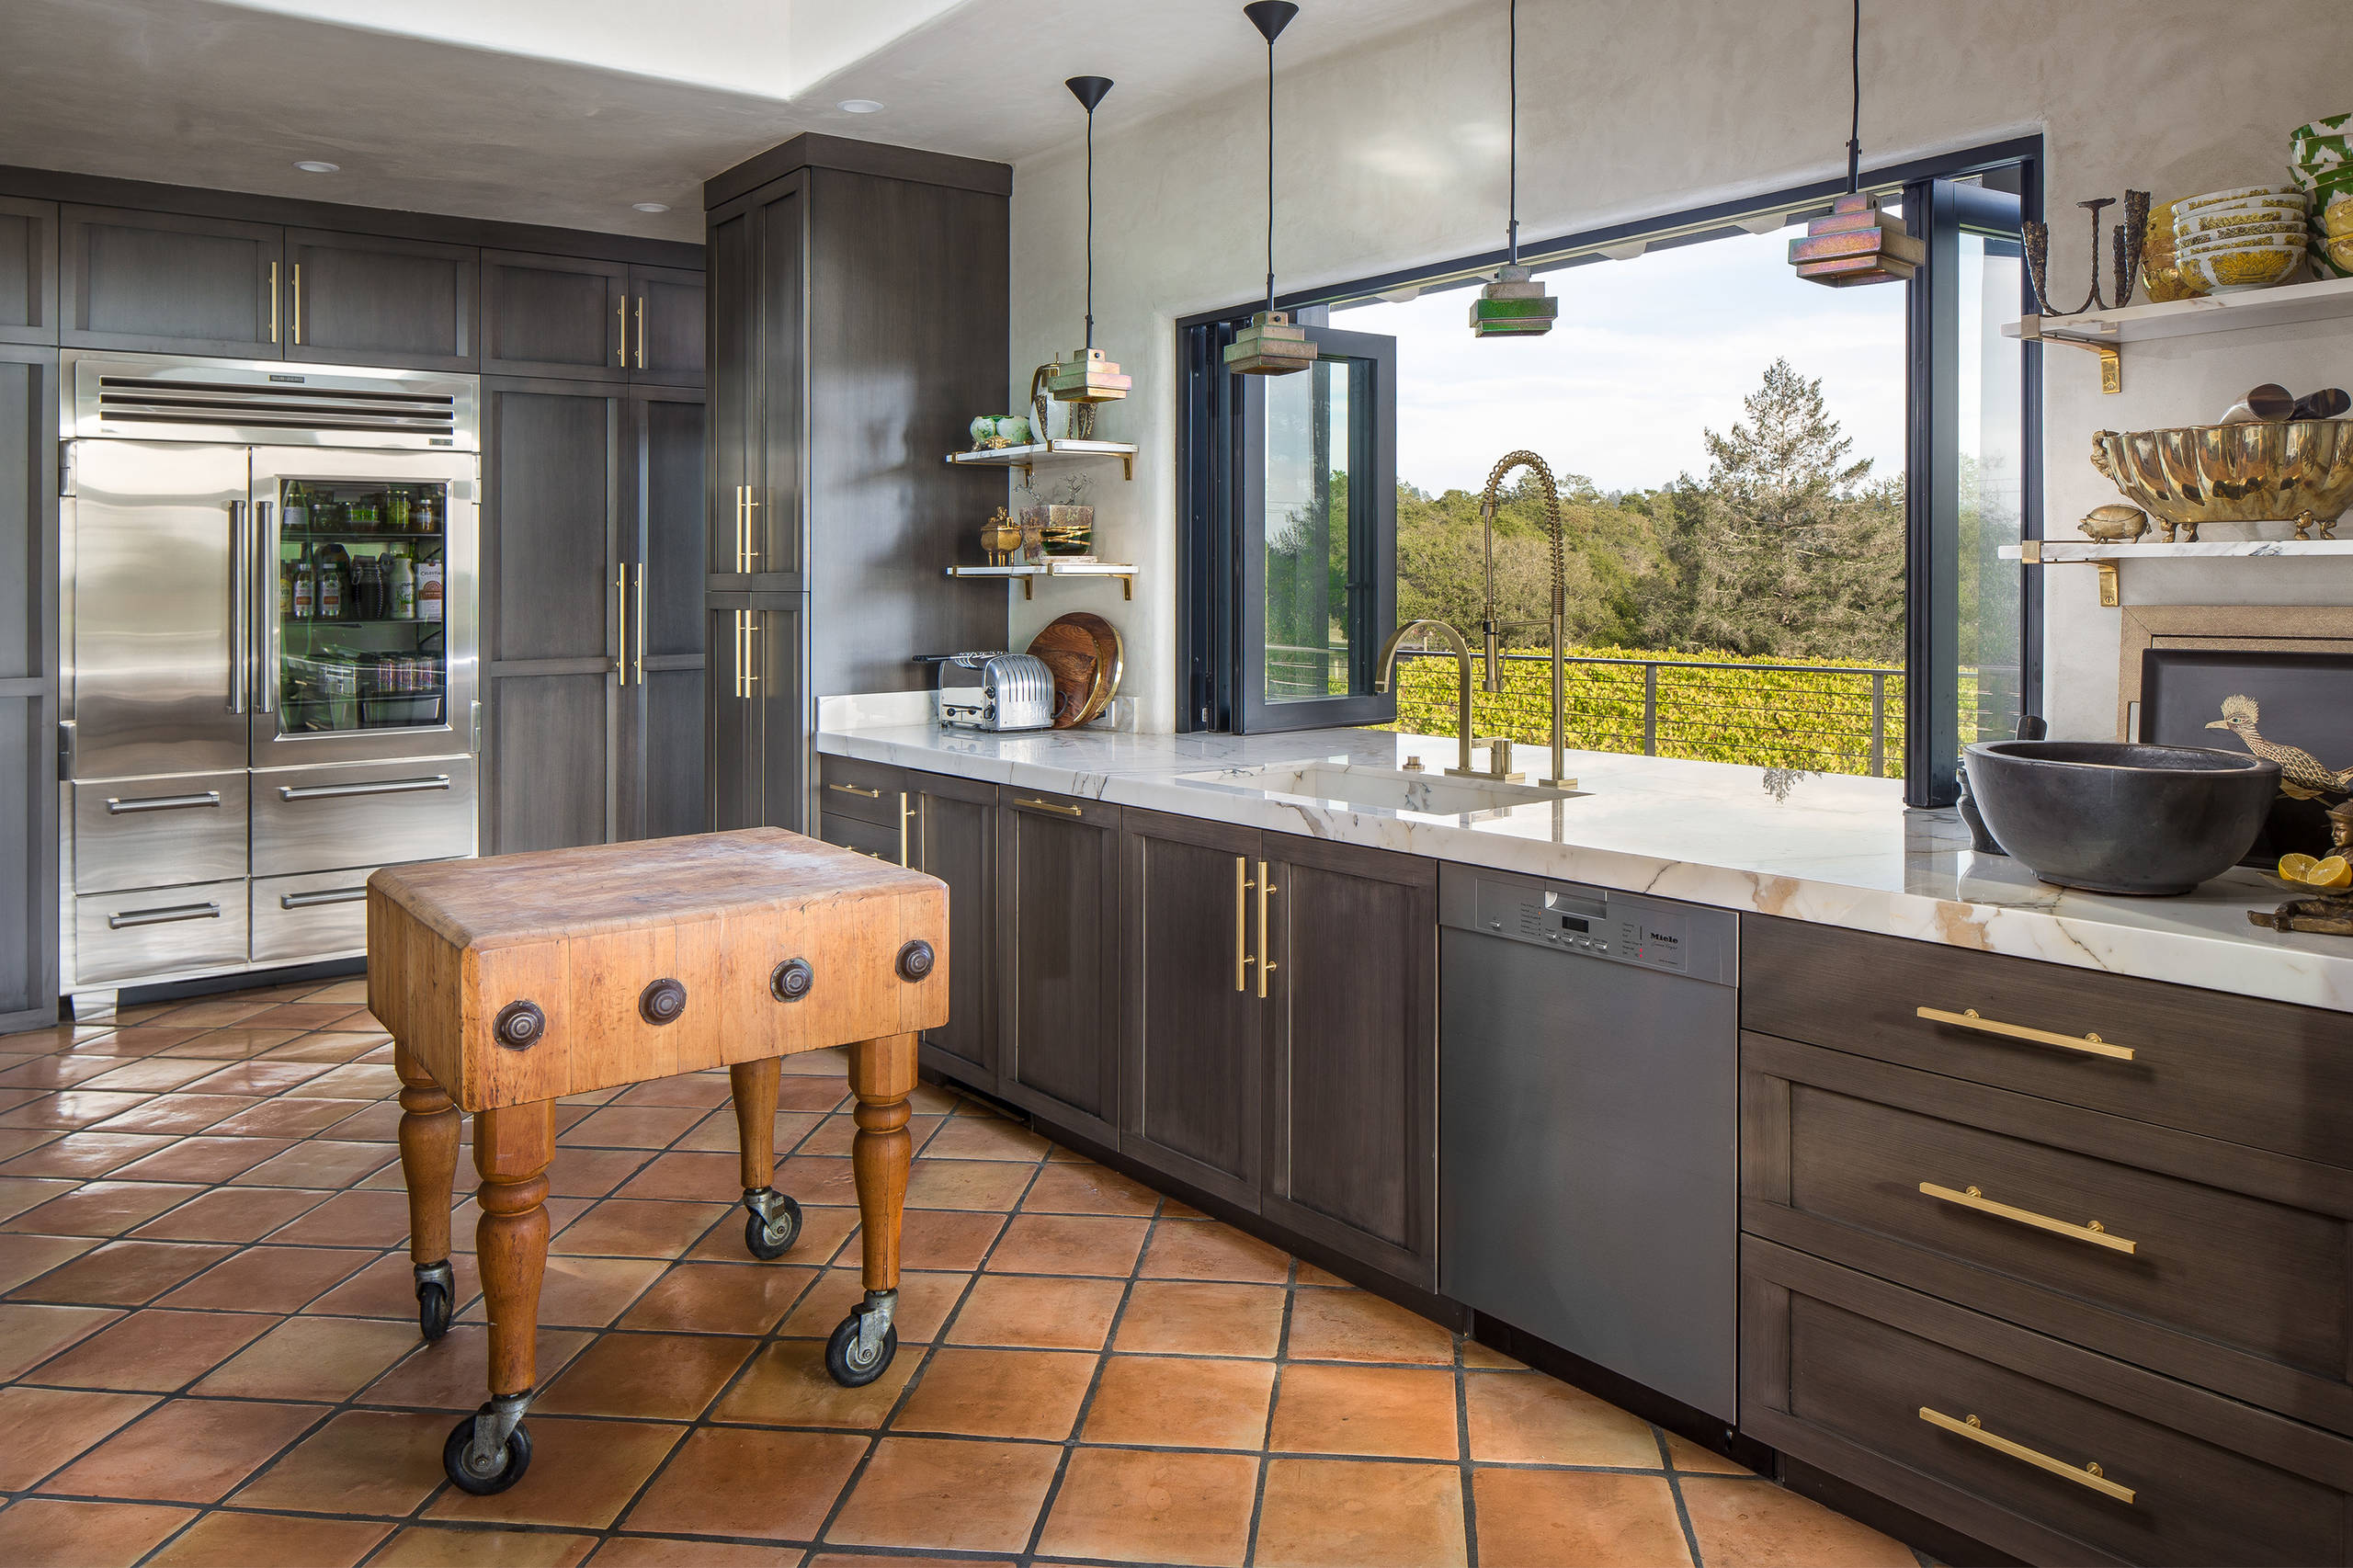 75 Beautiful Kitchen With Gray Cabinets And Marble Countertops Pictures Ideas December 2020 Houzz